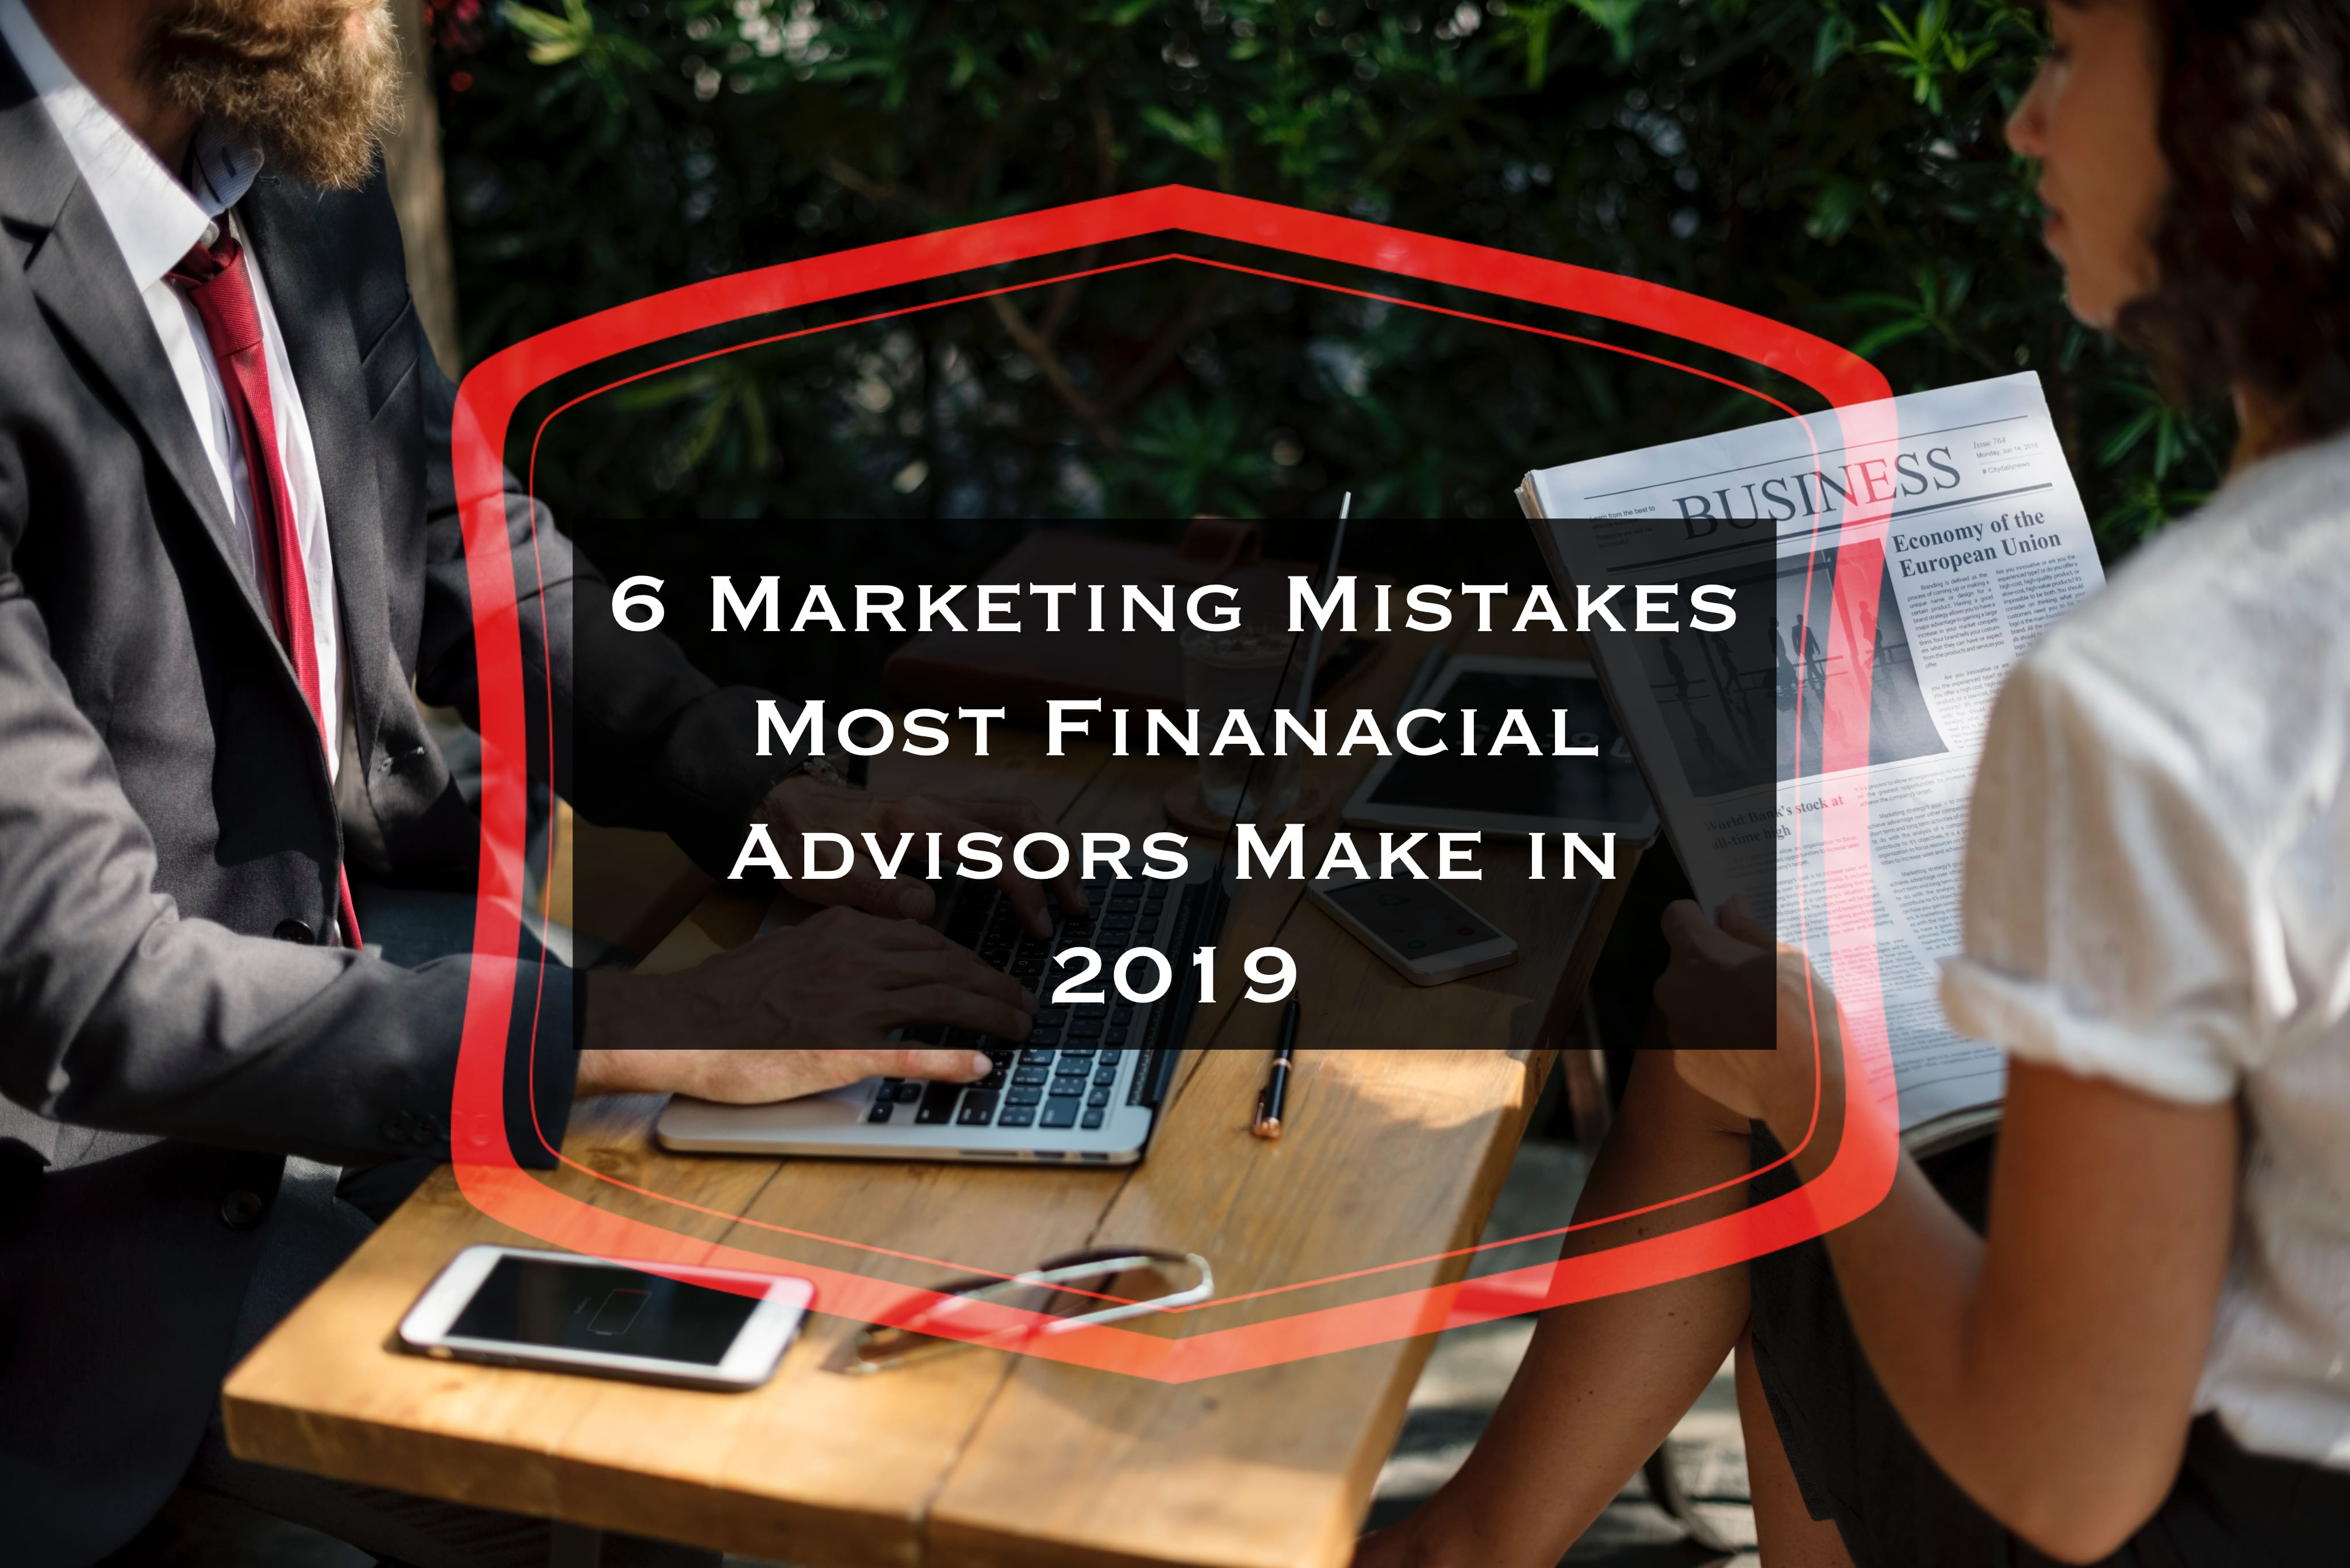 6 Marketing Mistakes Most Financial Advisors Make in 2019